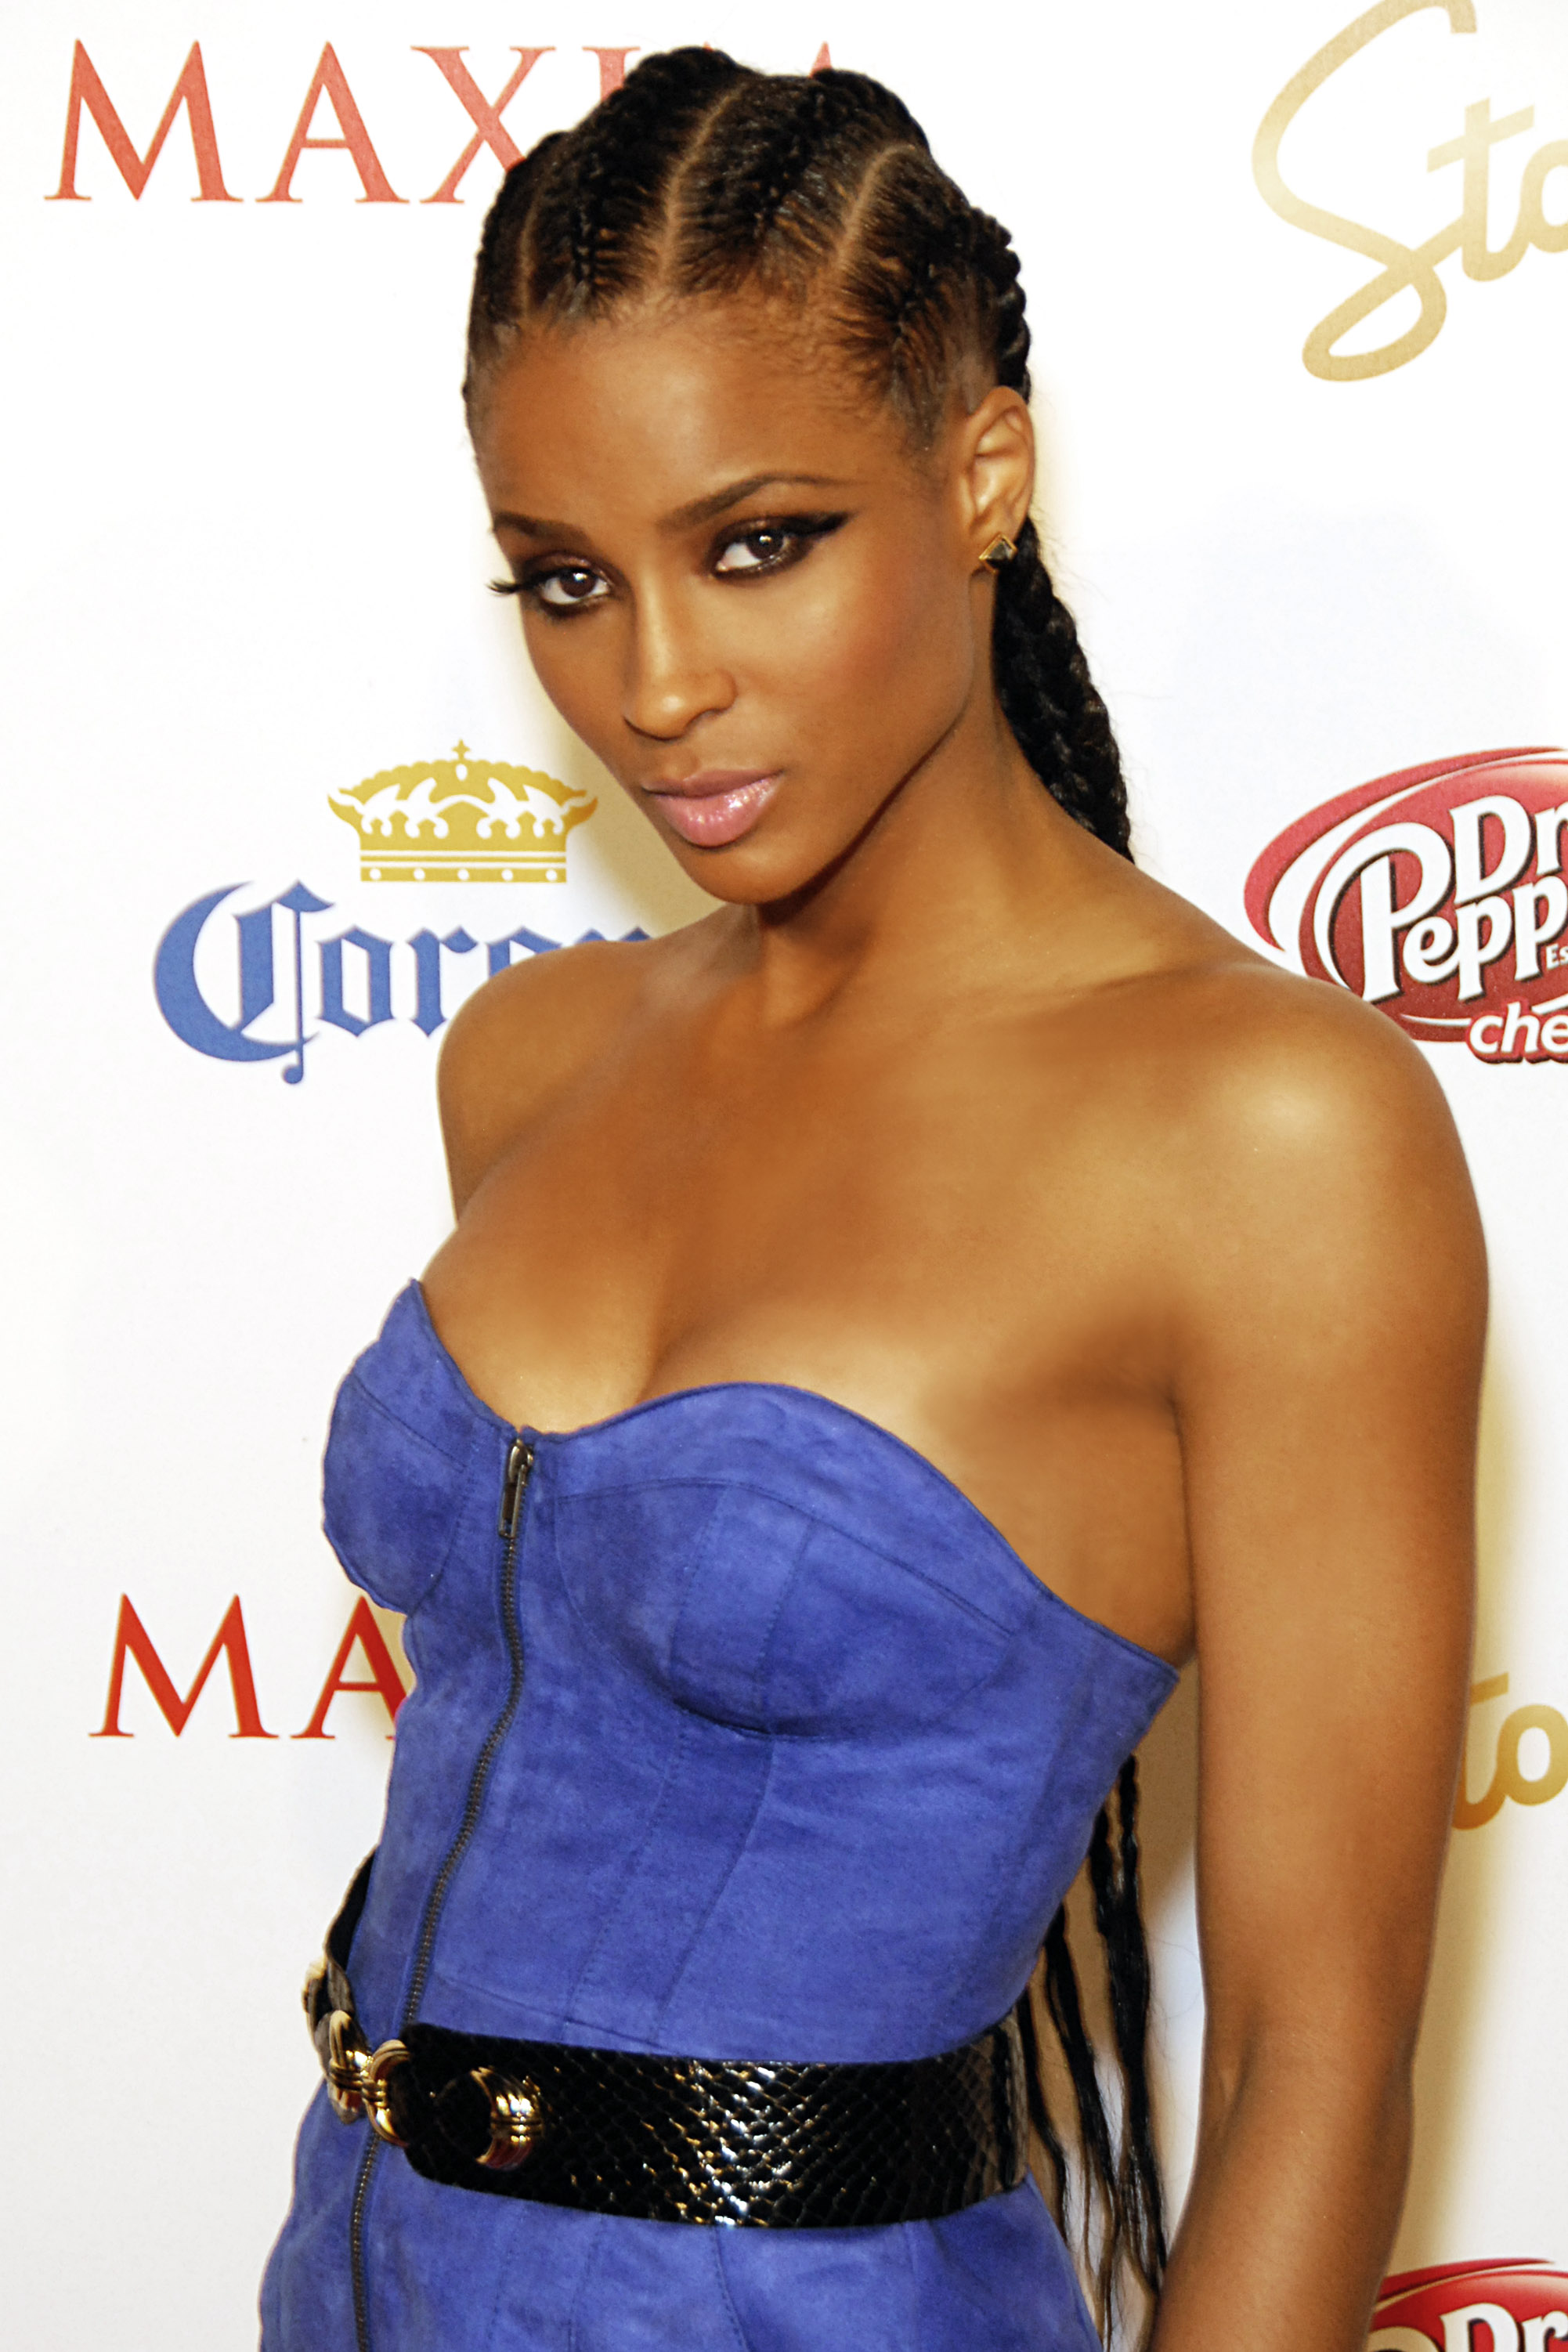 File:Ciara 2009.jpg - Wikipedia